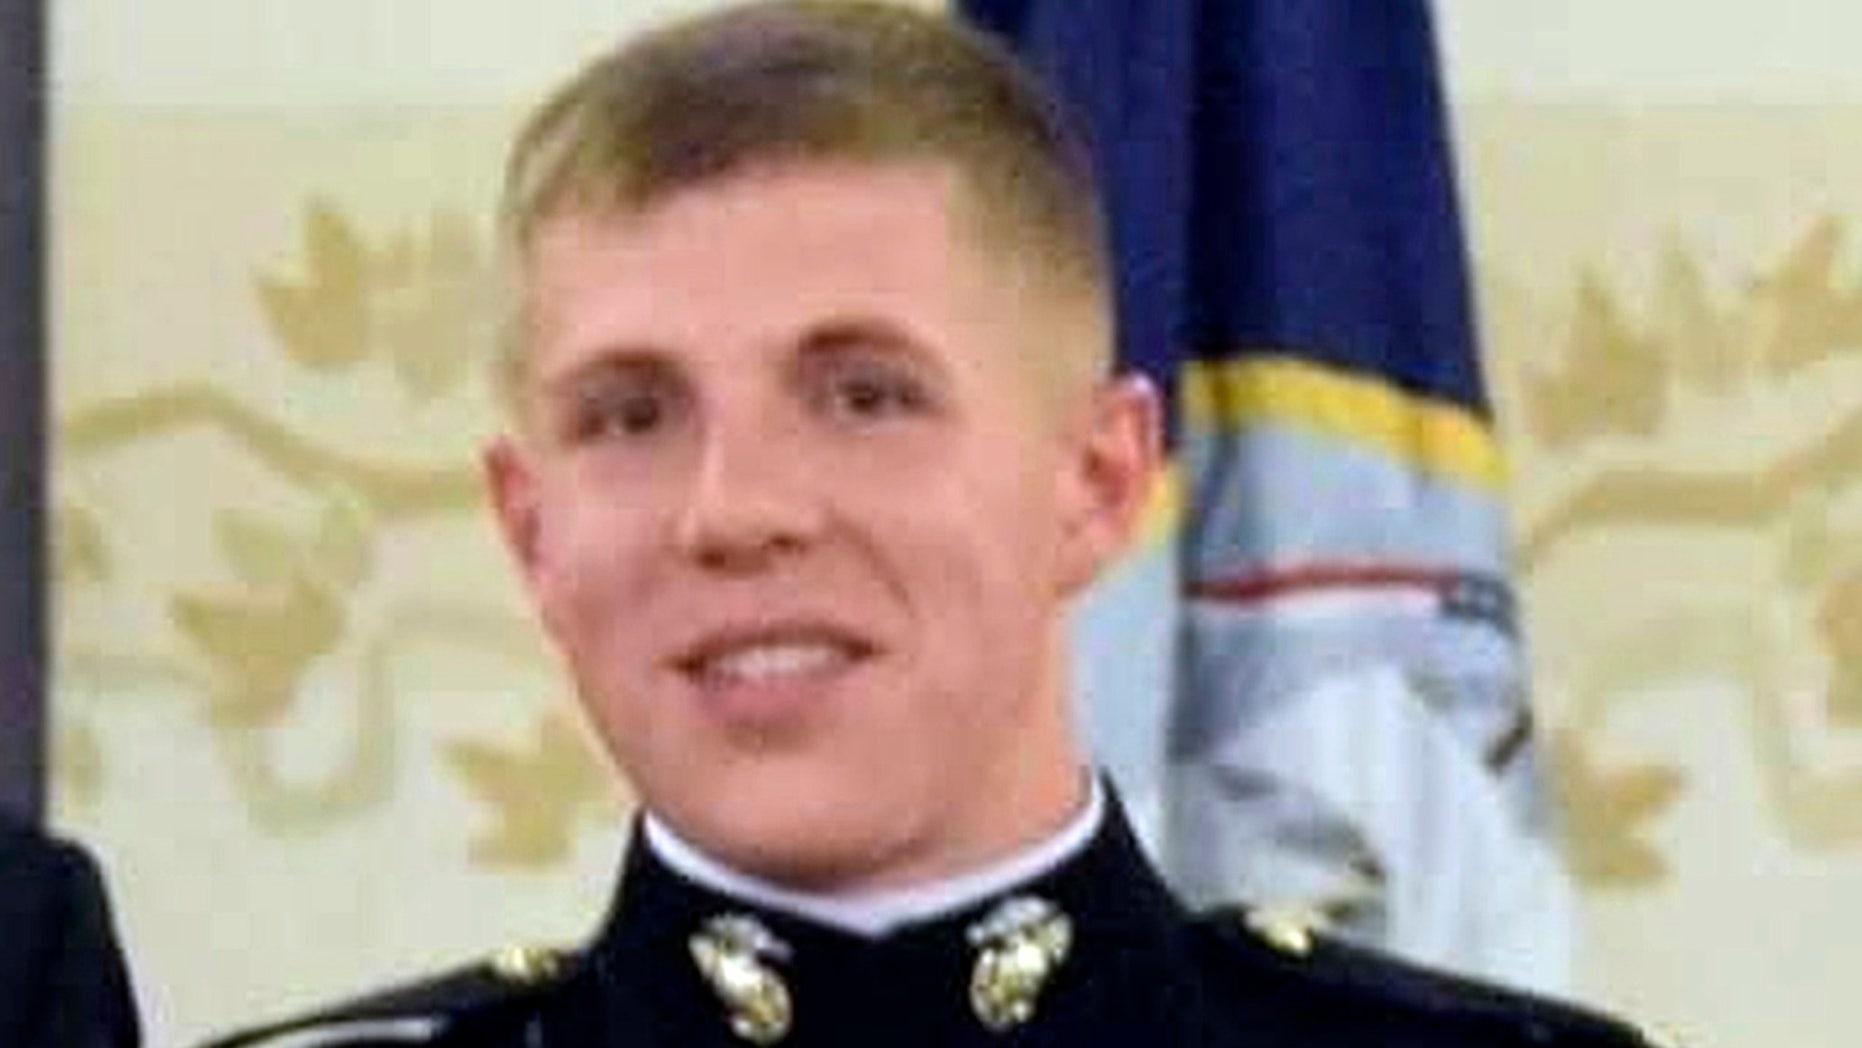 Search-and-rescue teams located First Lt. Matthew Kraft's car Firday night as crews continue to search California's Sierra Nevada for the missing Camp Pendleton Marine, authorities said Saturday. (U.S. Marine Corps via AP)